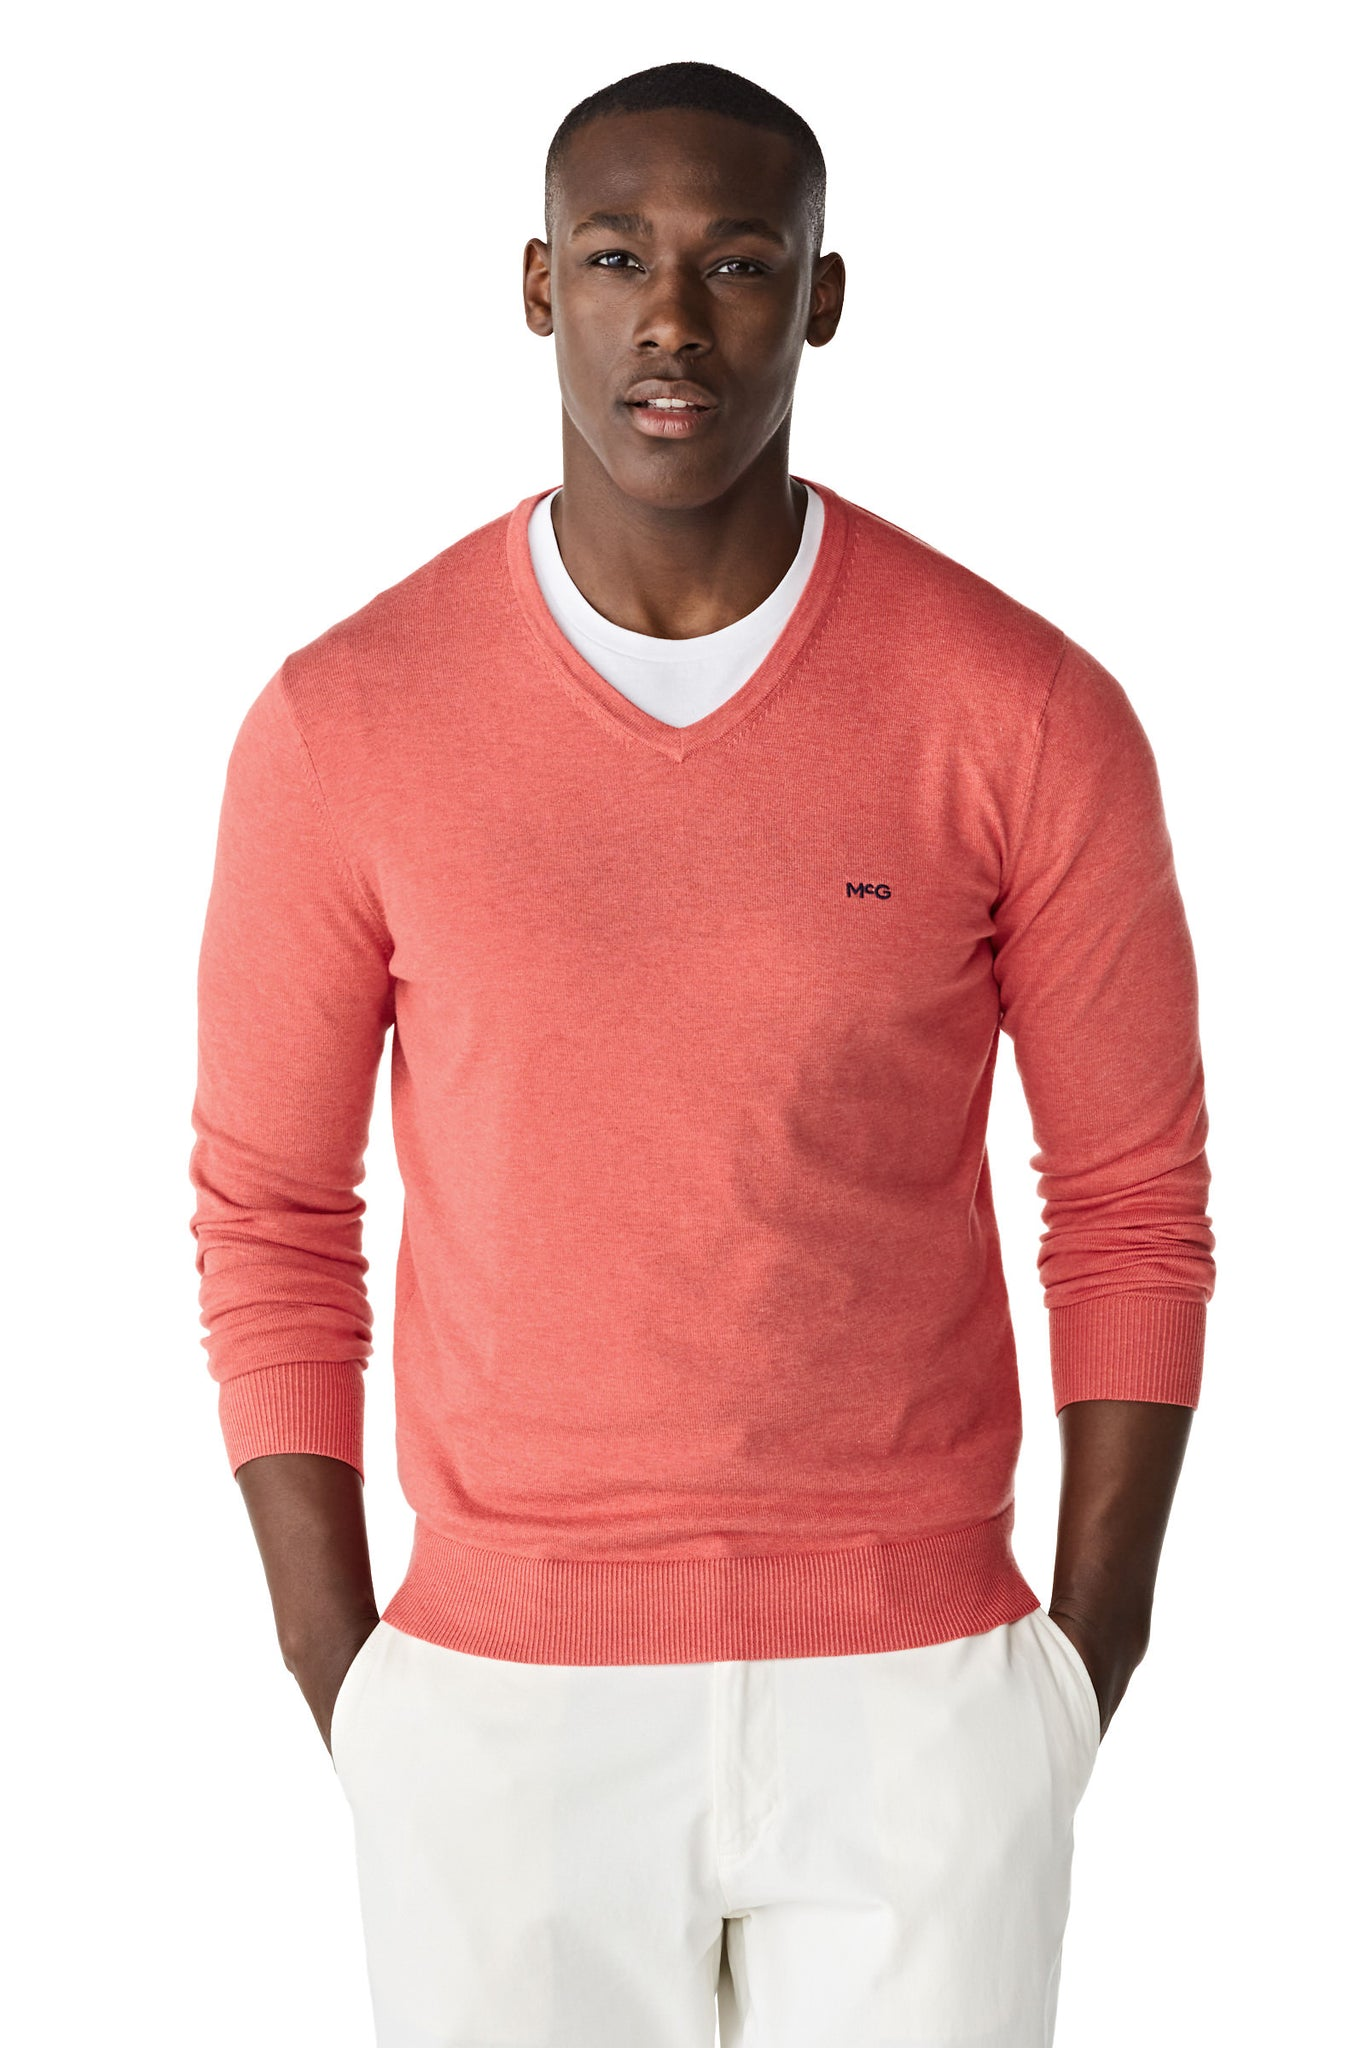 McG V-neck sweater in cotton silk blend